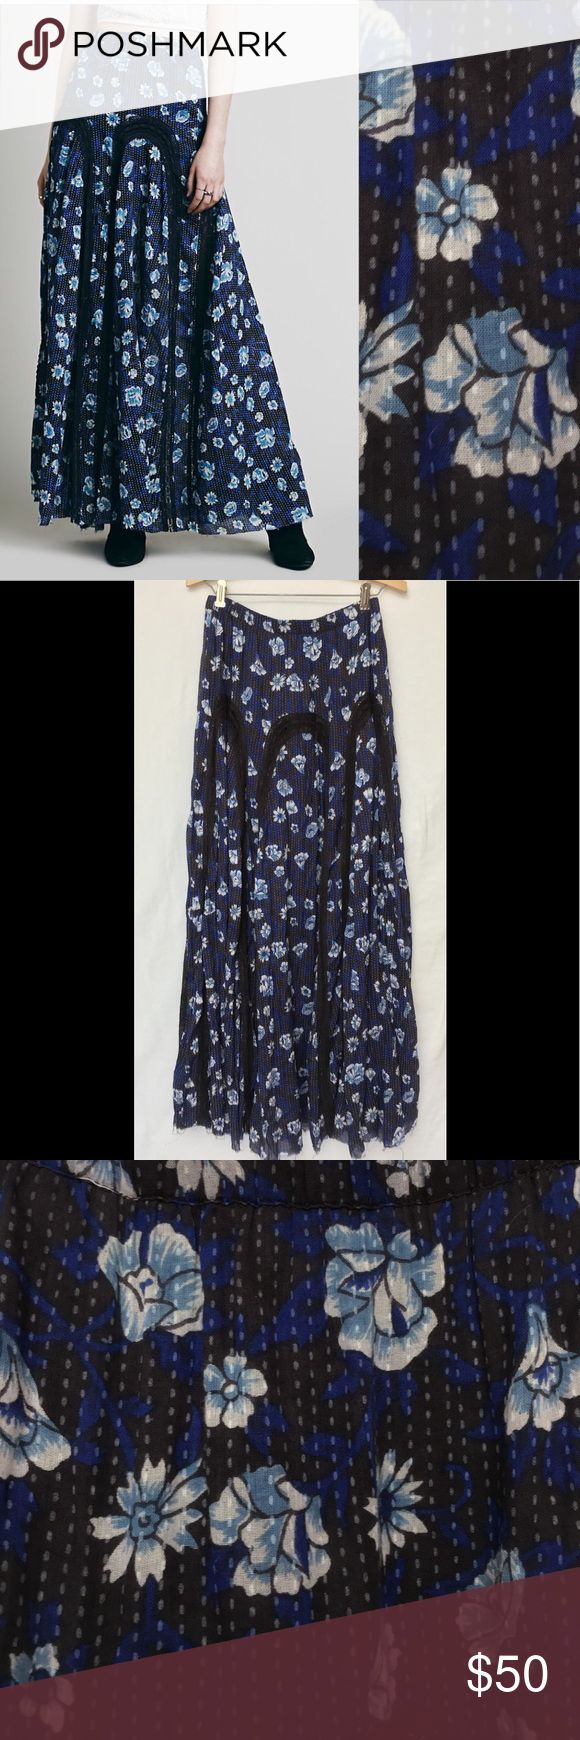 Free People FP ONE Zoe Maxi Skirt Crochet Floral Free People FP ONE Zoe Maxi Skirt Blue Black Crochet Floral Small Gauzy cotton maxi with a boho floral print and lace inserts. Features a mini underskirt lining and a stretchy elastic waistband. Frayed unfinished hem.  *FP One is an exclusive collection made with love from India. *100% Cotton  *Hand Wash Cold  *Import  Measurements: Waist: 27 1/2 in  Length: 42 7/8 in  New with tags from Bloomingdales. Mini skirt liner has a large hole as…